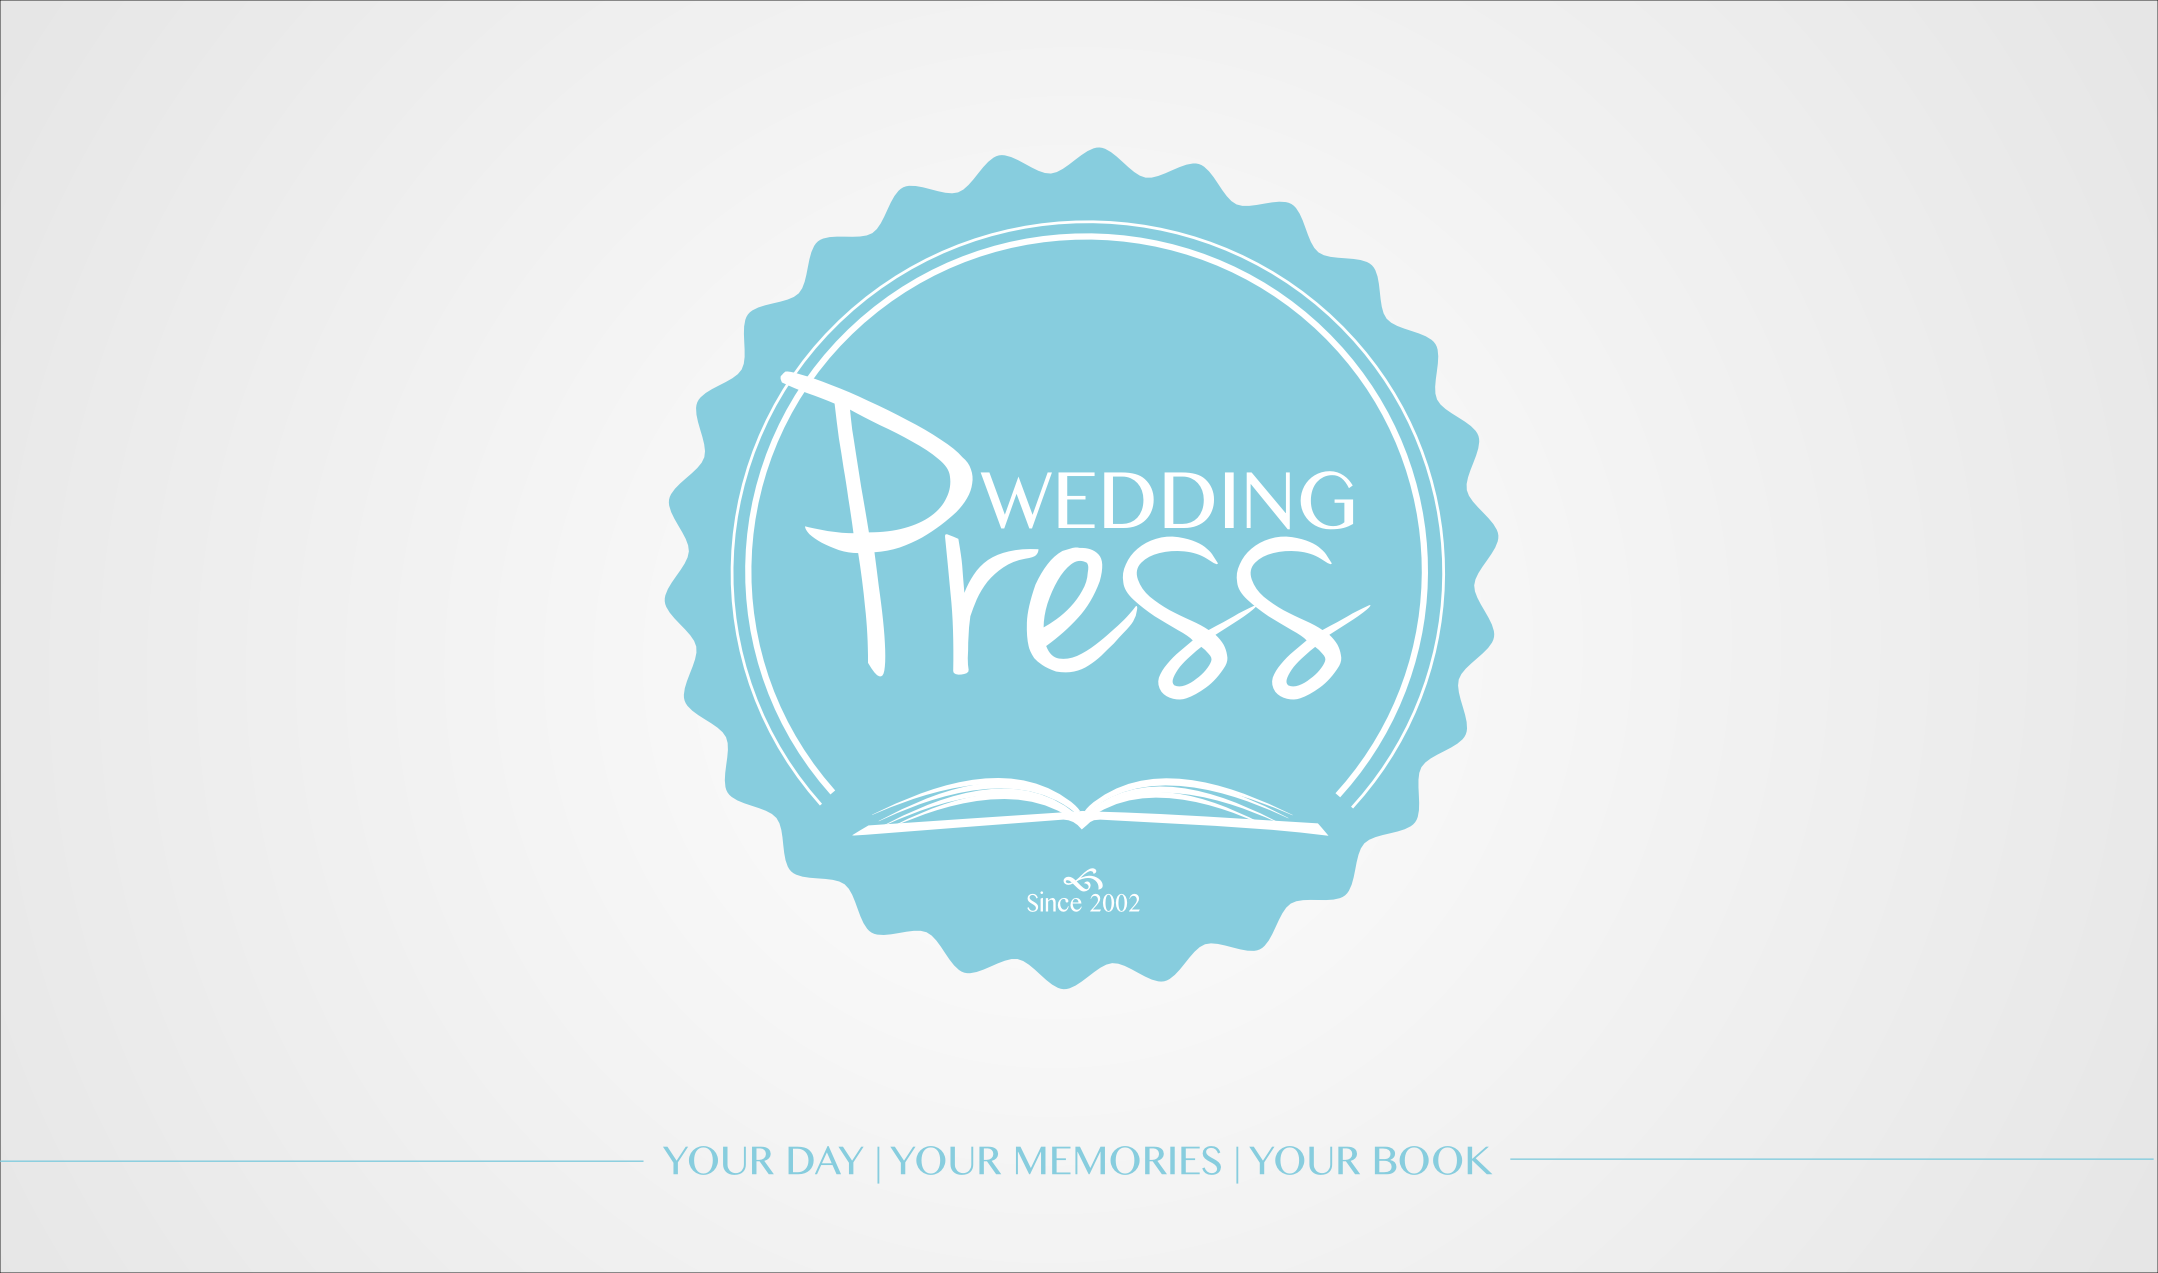 Logo Design by Andrew Bertram - Entry No. 35 in the Logo Design Contest Wedding Writes Logo Design.